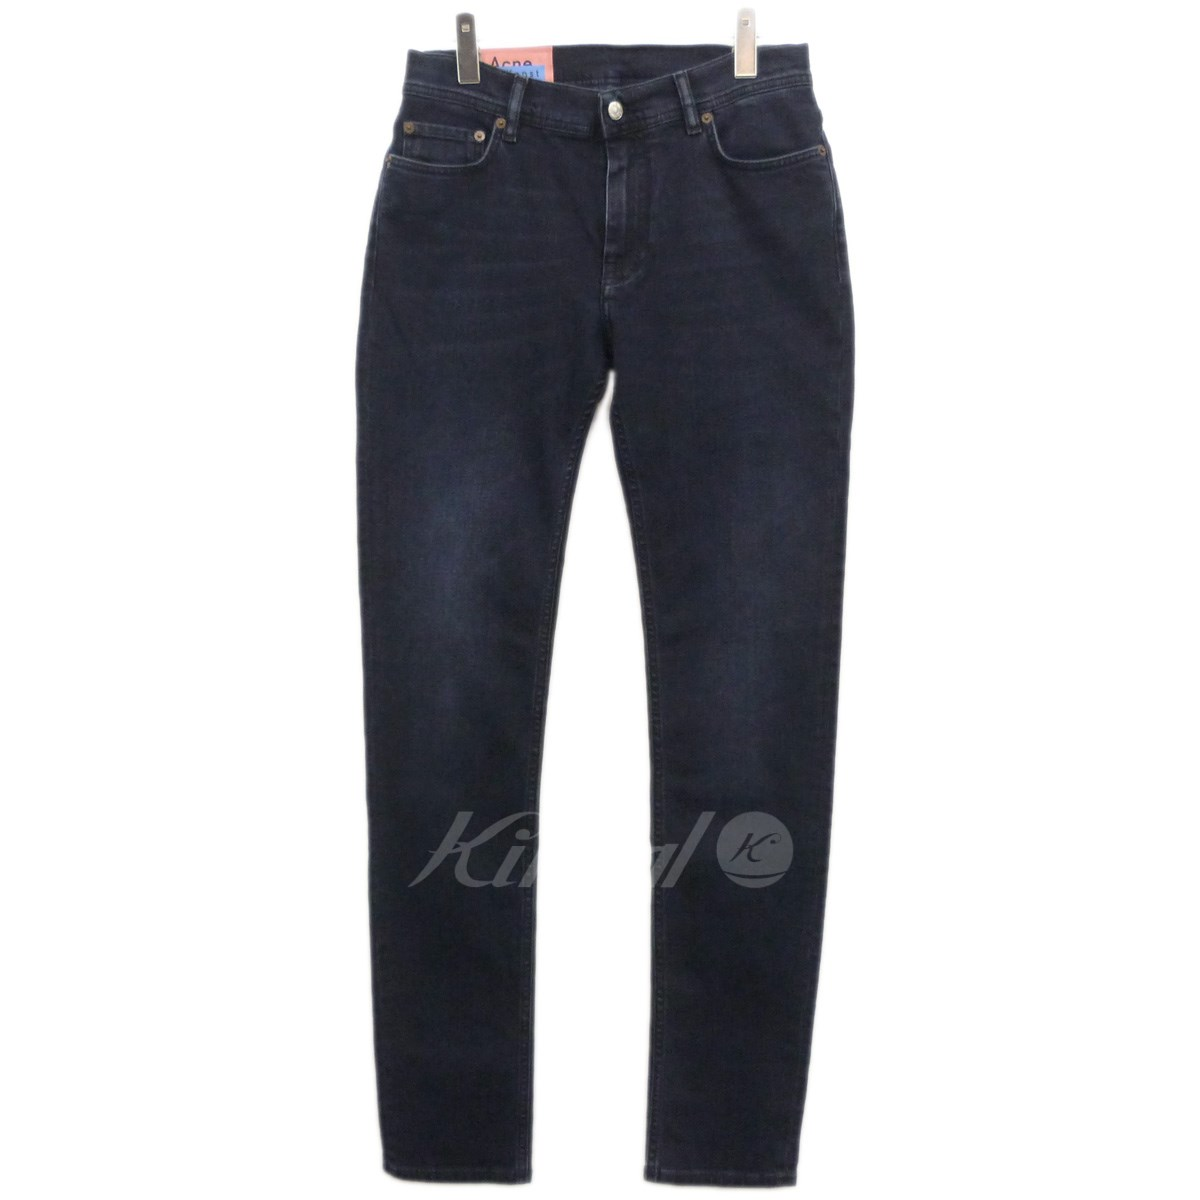 【中古】ACNE STUDIOS Bla konst 18AW「NORTH BLUE BLACK」ストレッチデニムパンツ 【送料無料】 【123202】 【KIND1641】